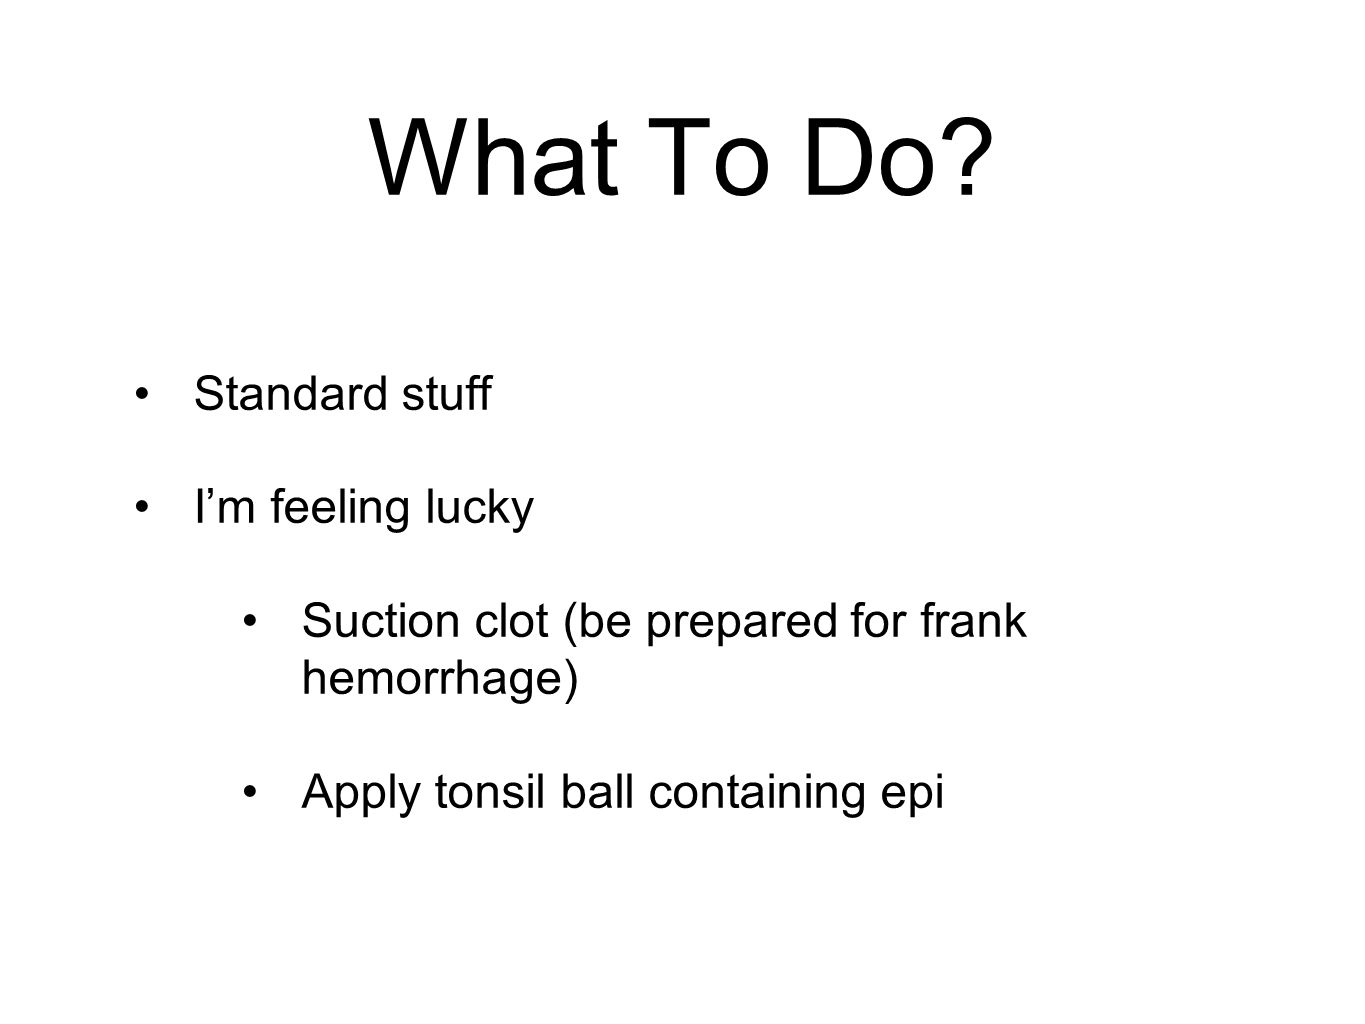 Standard stuff I'm feeling lucky Suction clot (be prepared for frank hemorrhage) Apply tonsil ball containing epi What To Do?